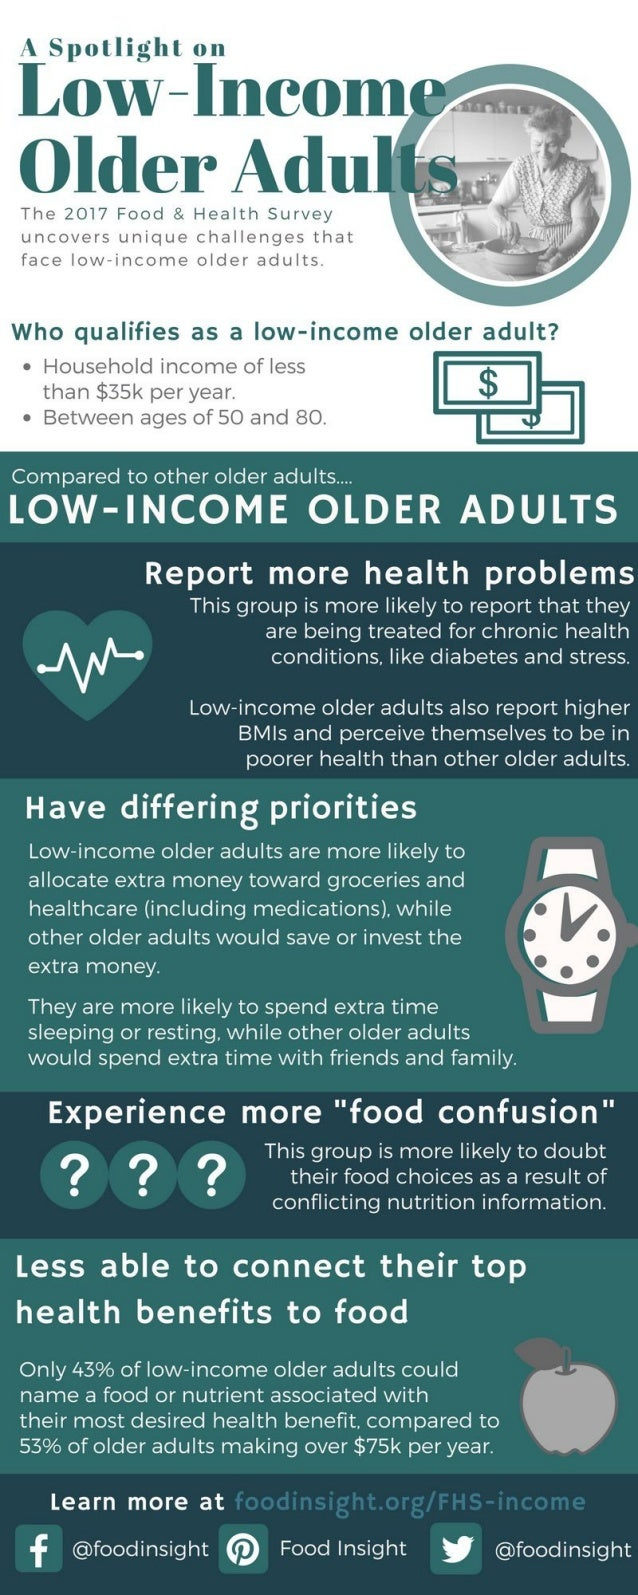 A Spotlight on Low-Income Older Adults